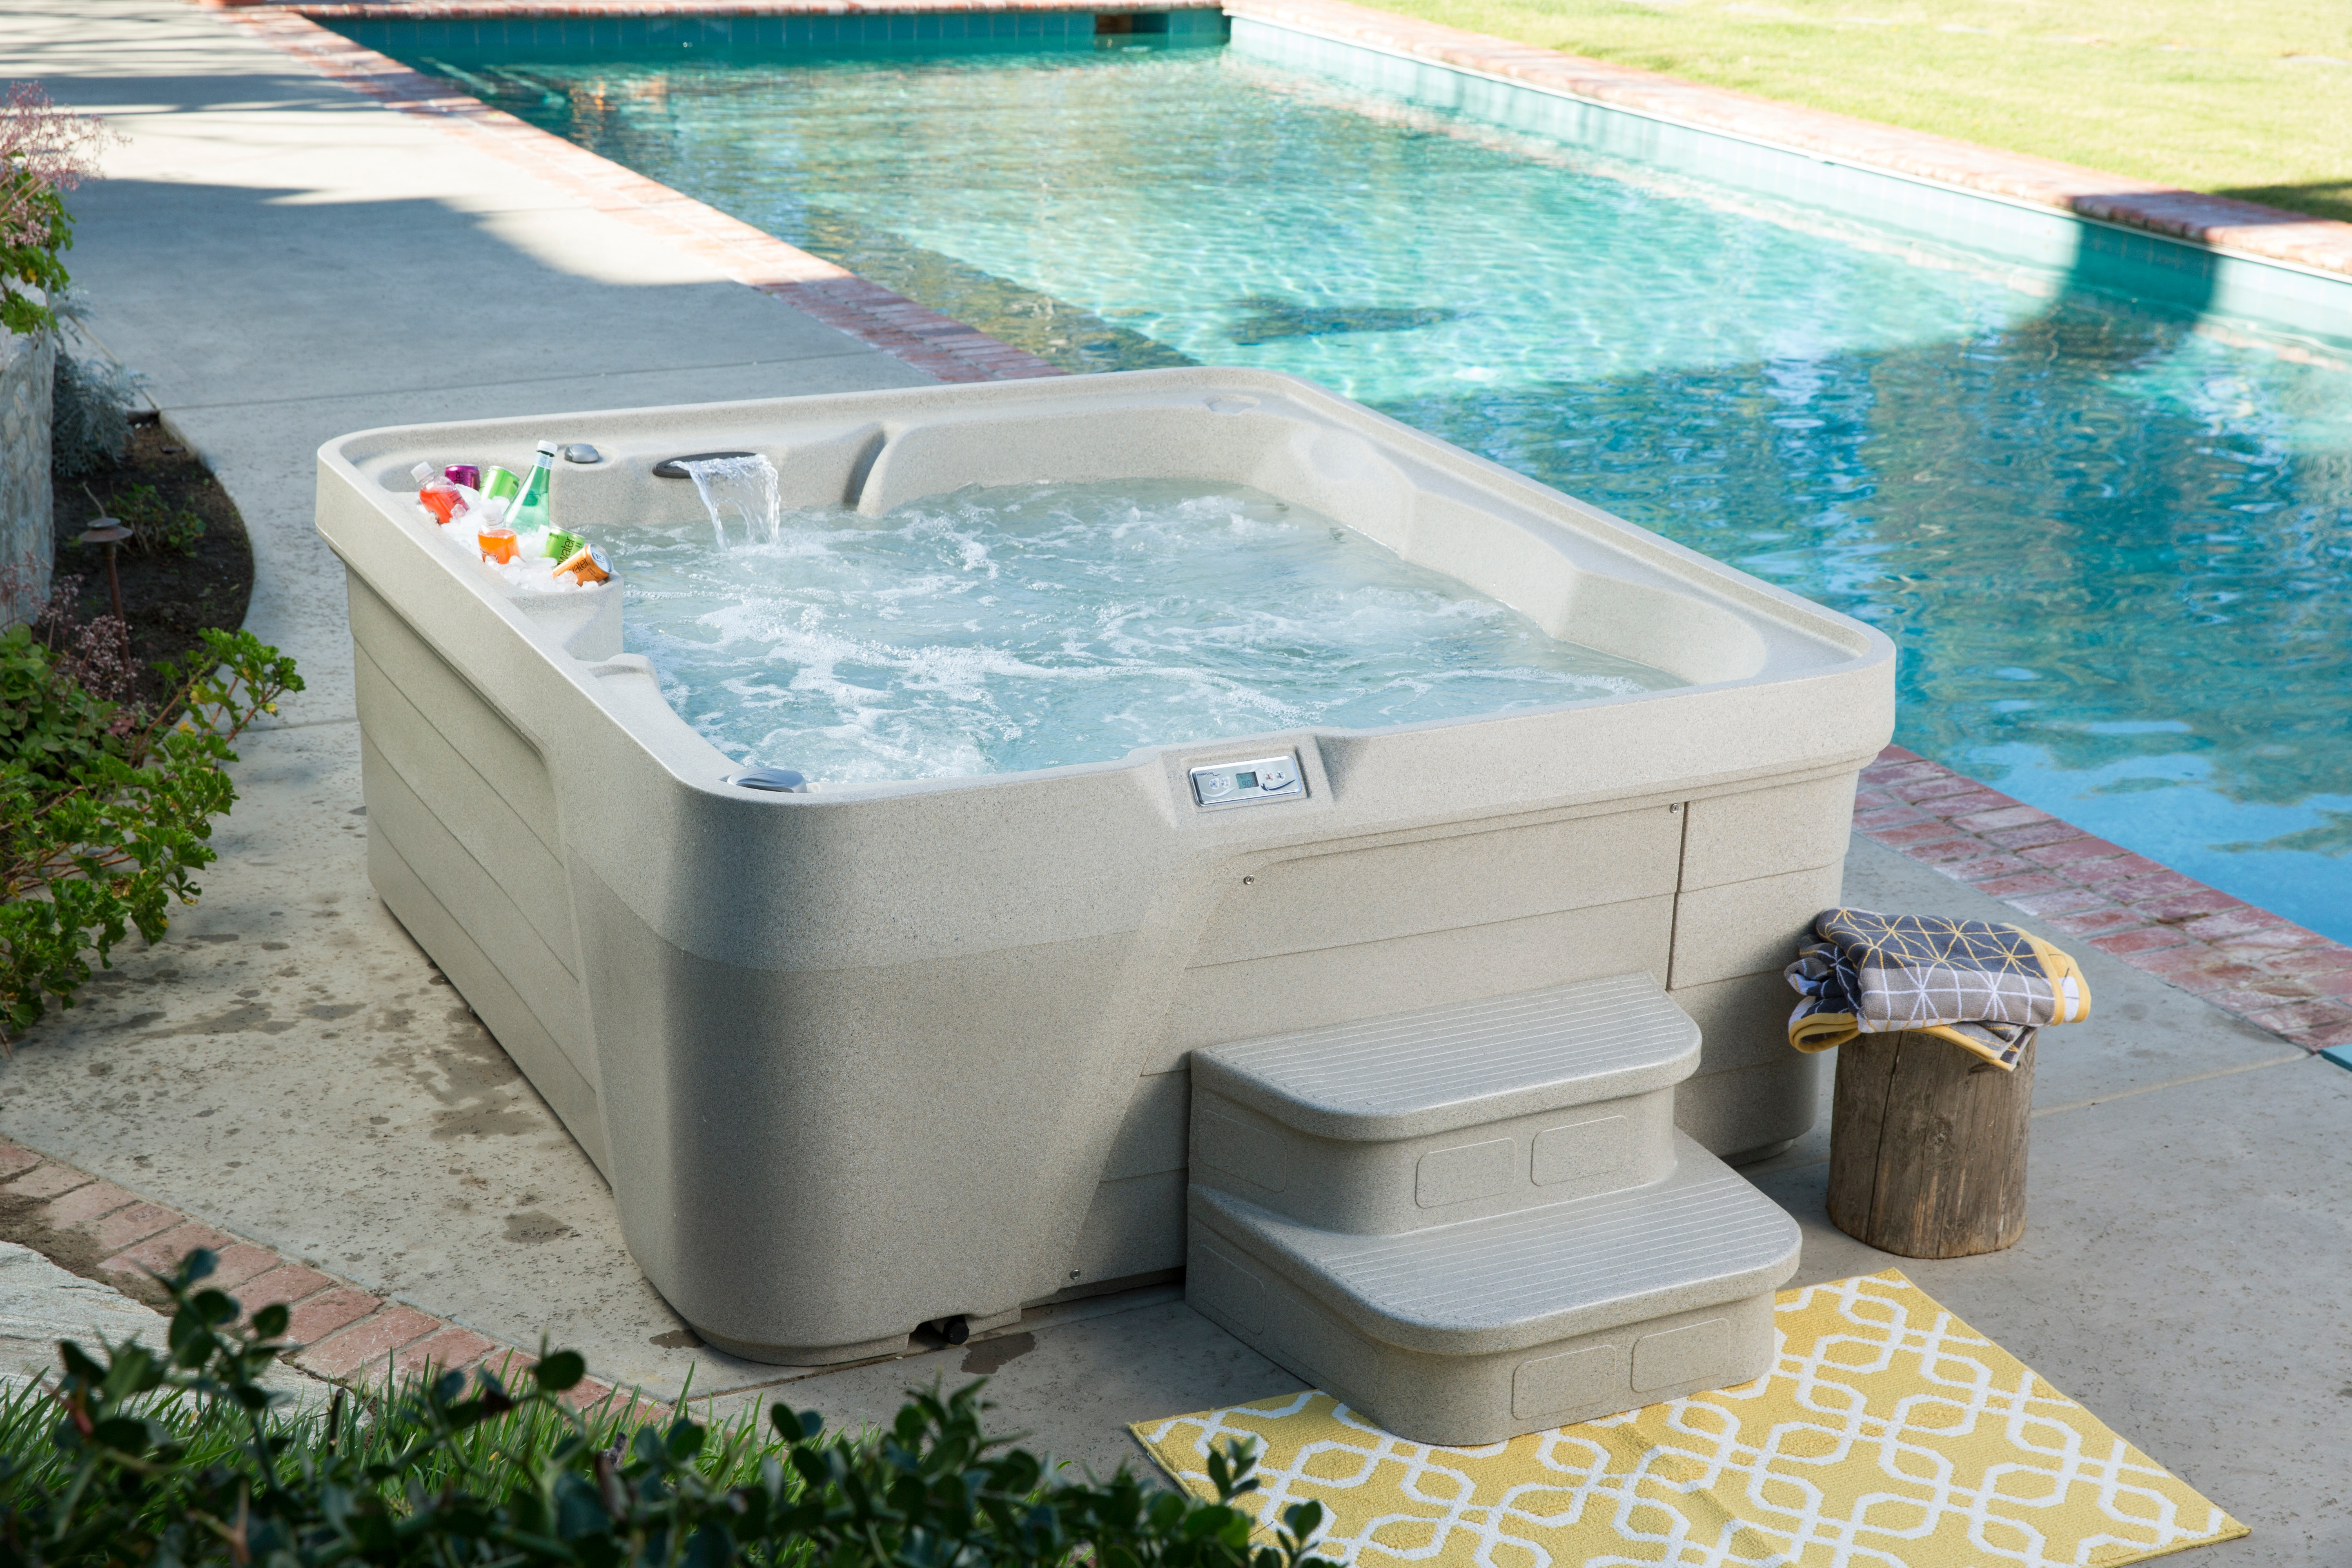 cost of hot tub - roto molded entry level hot tub